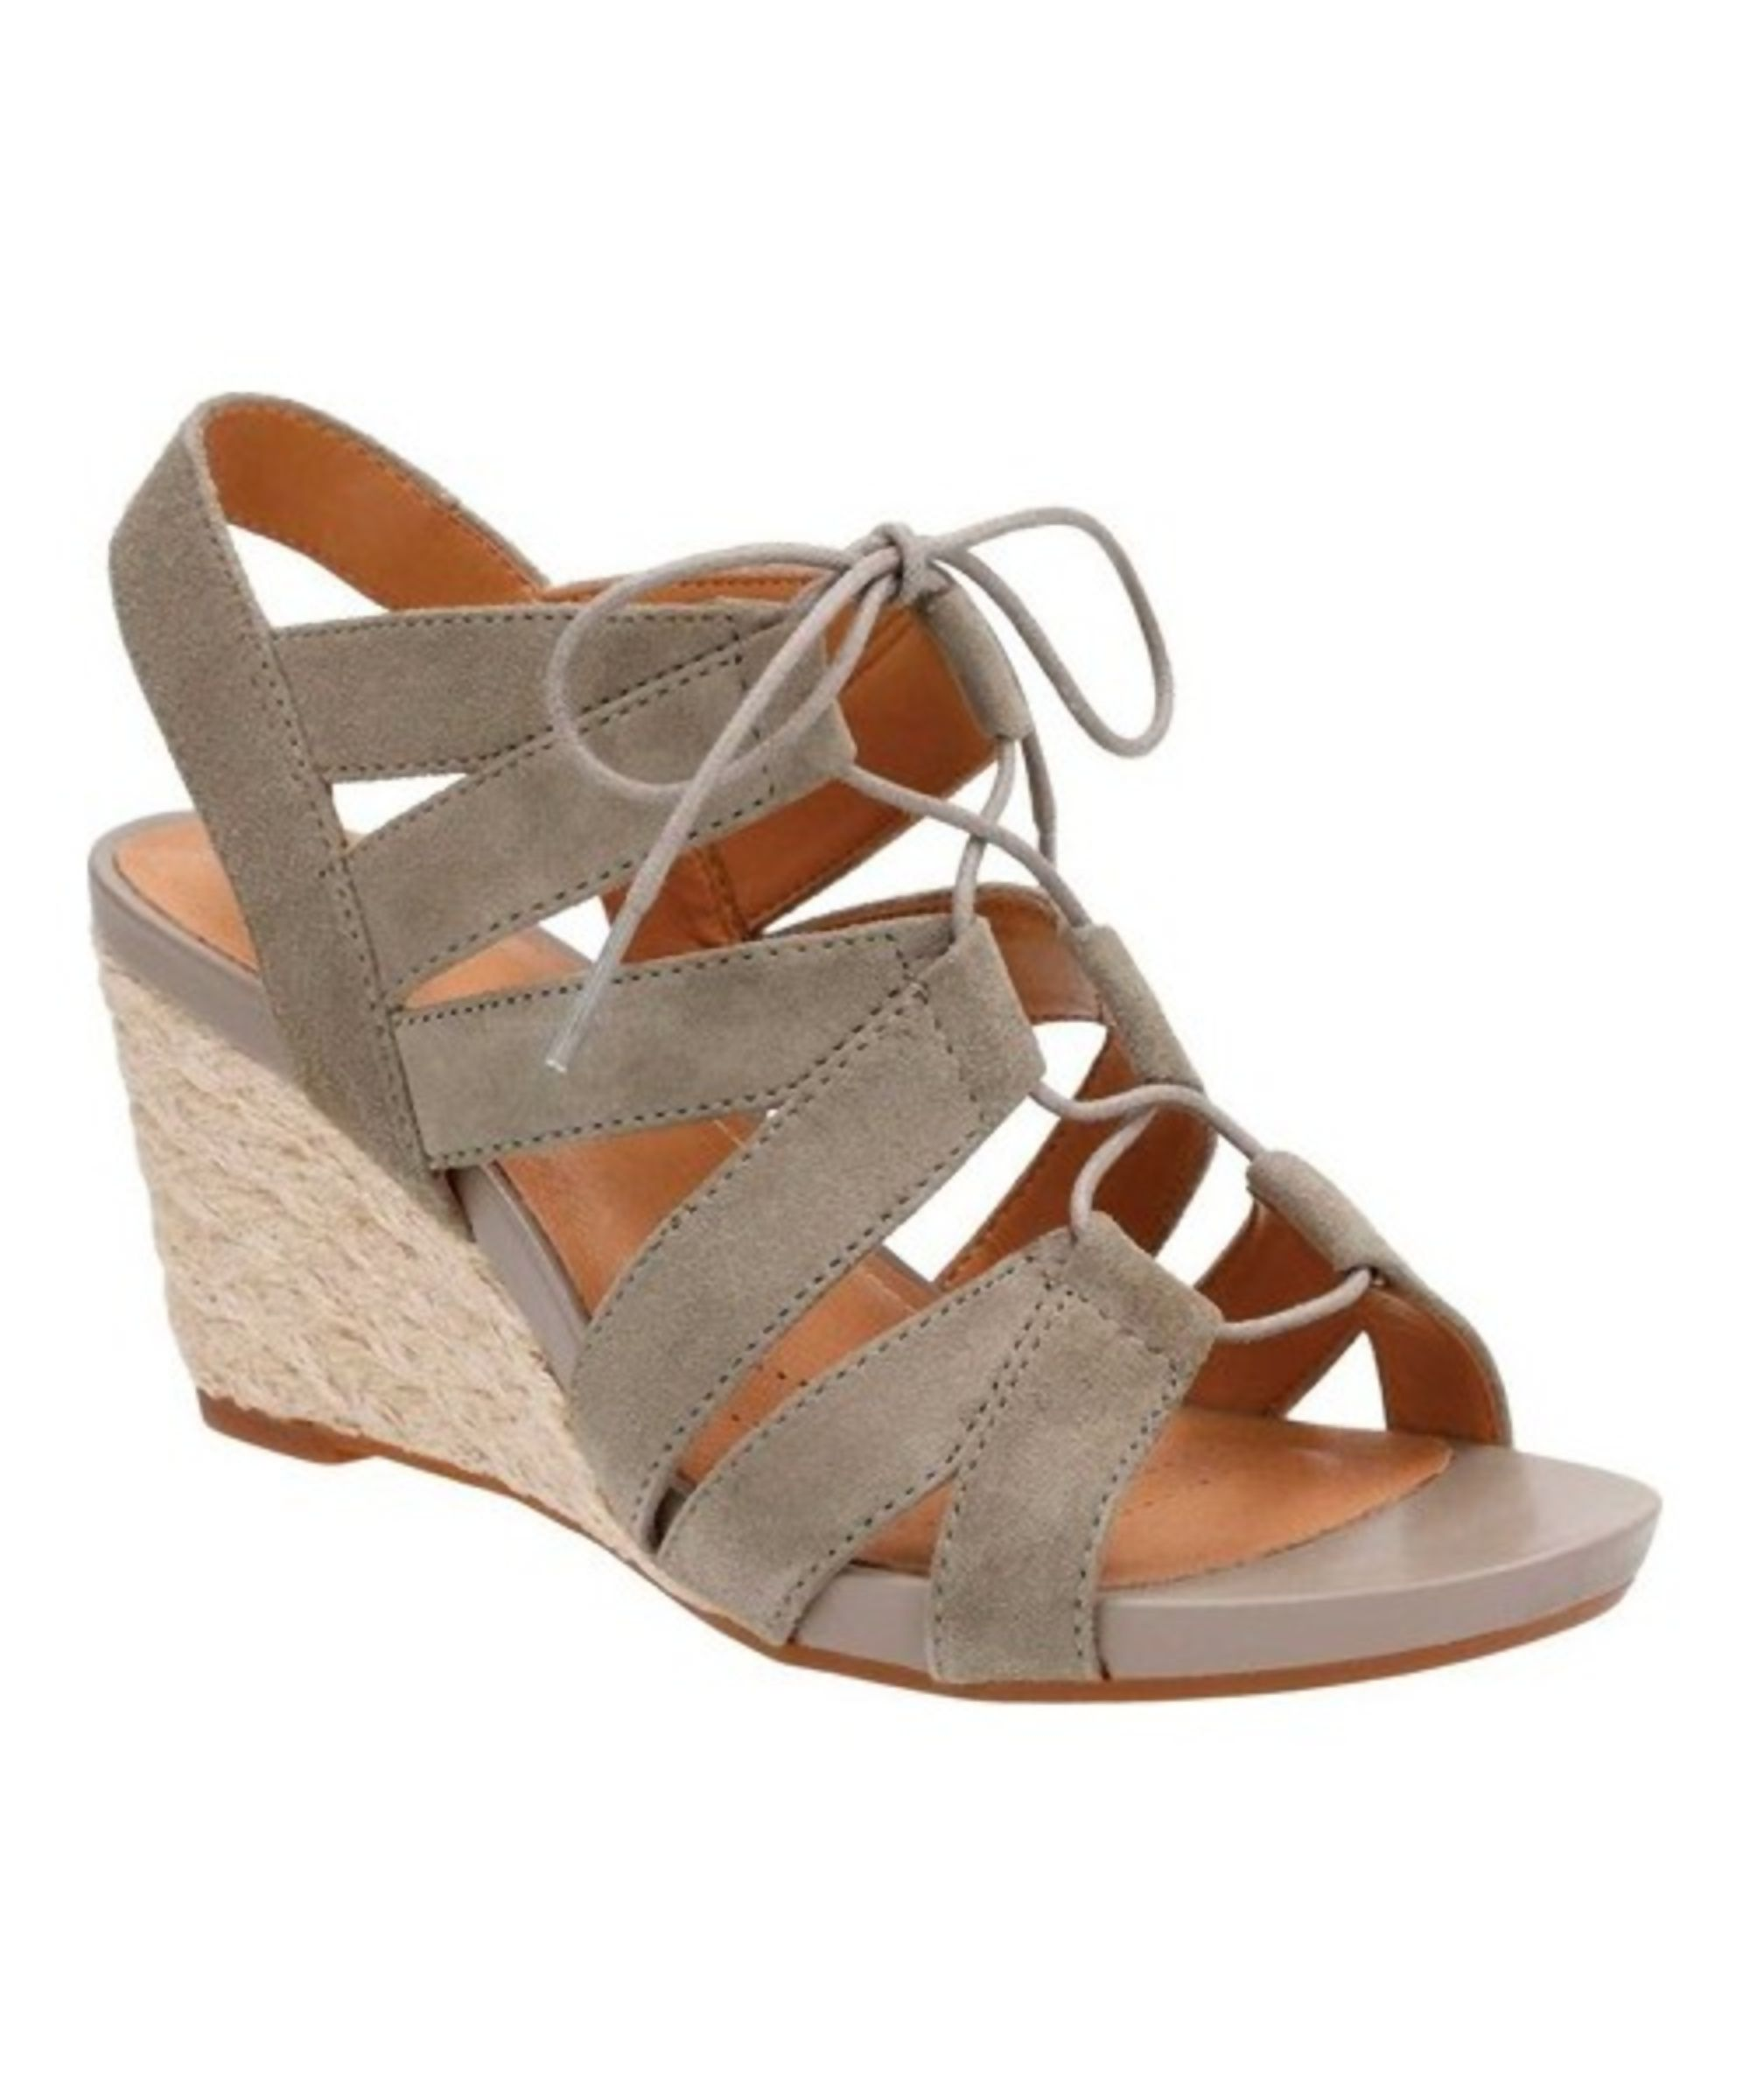 CLARKS | Clarks Women's Acina Chester Strappy Wedge #Shoes #Sandals #CLARKS